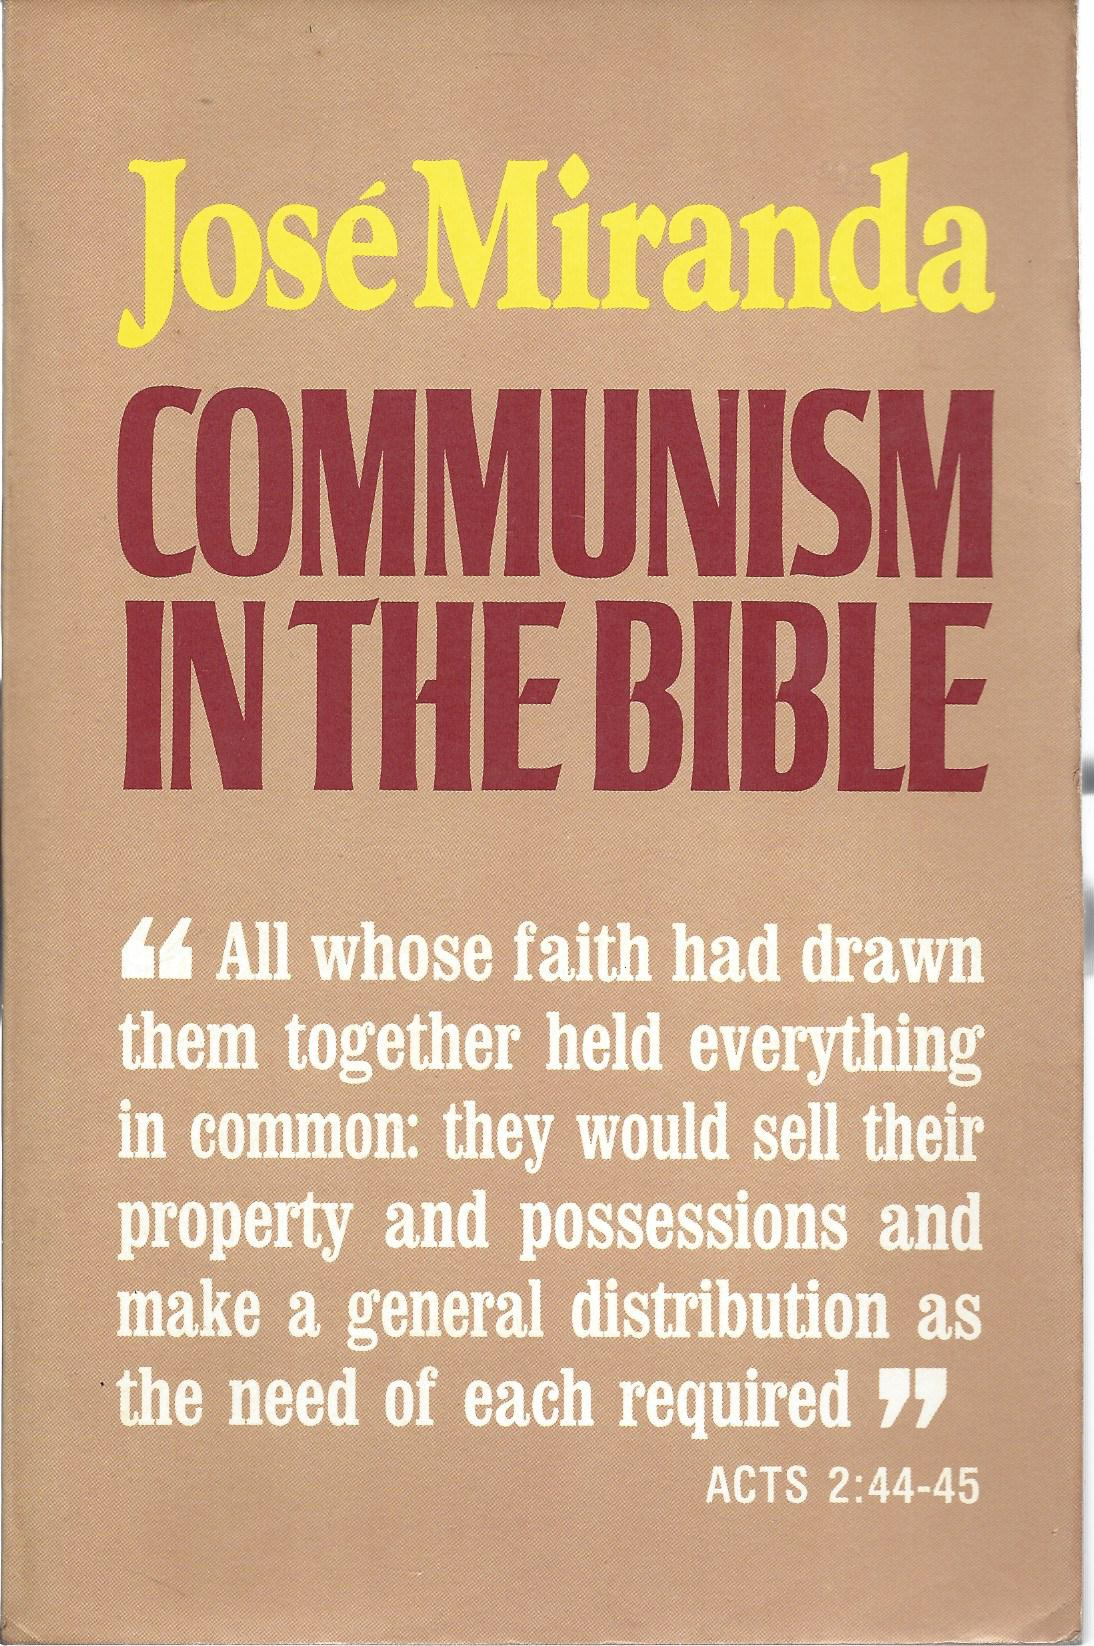 communism-in-the-bible-primera-edici%c2%a2n-orbis-book-1982